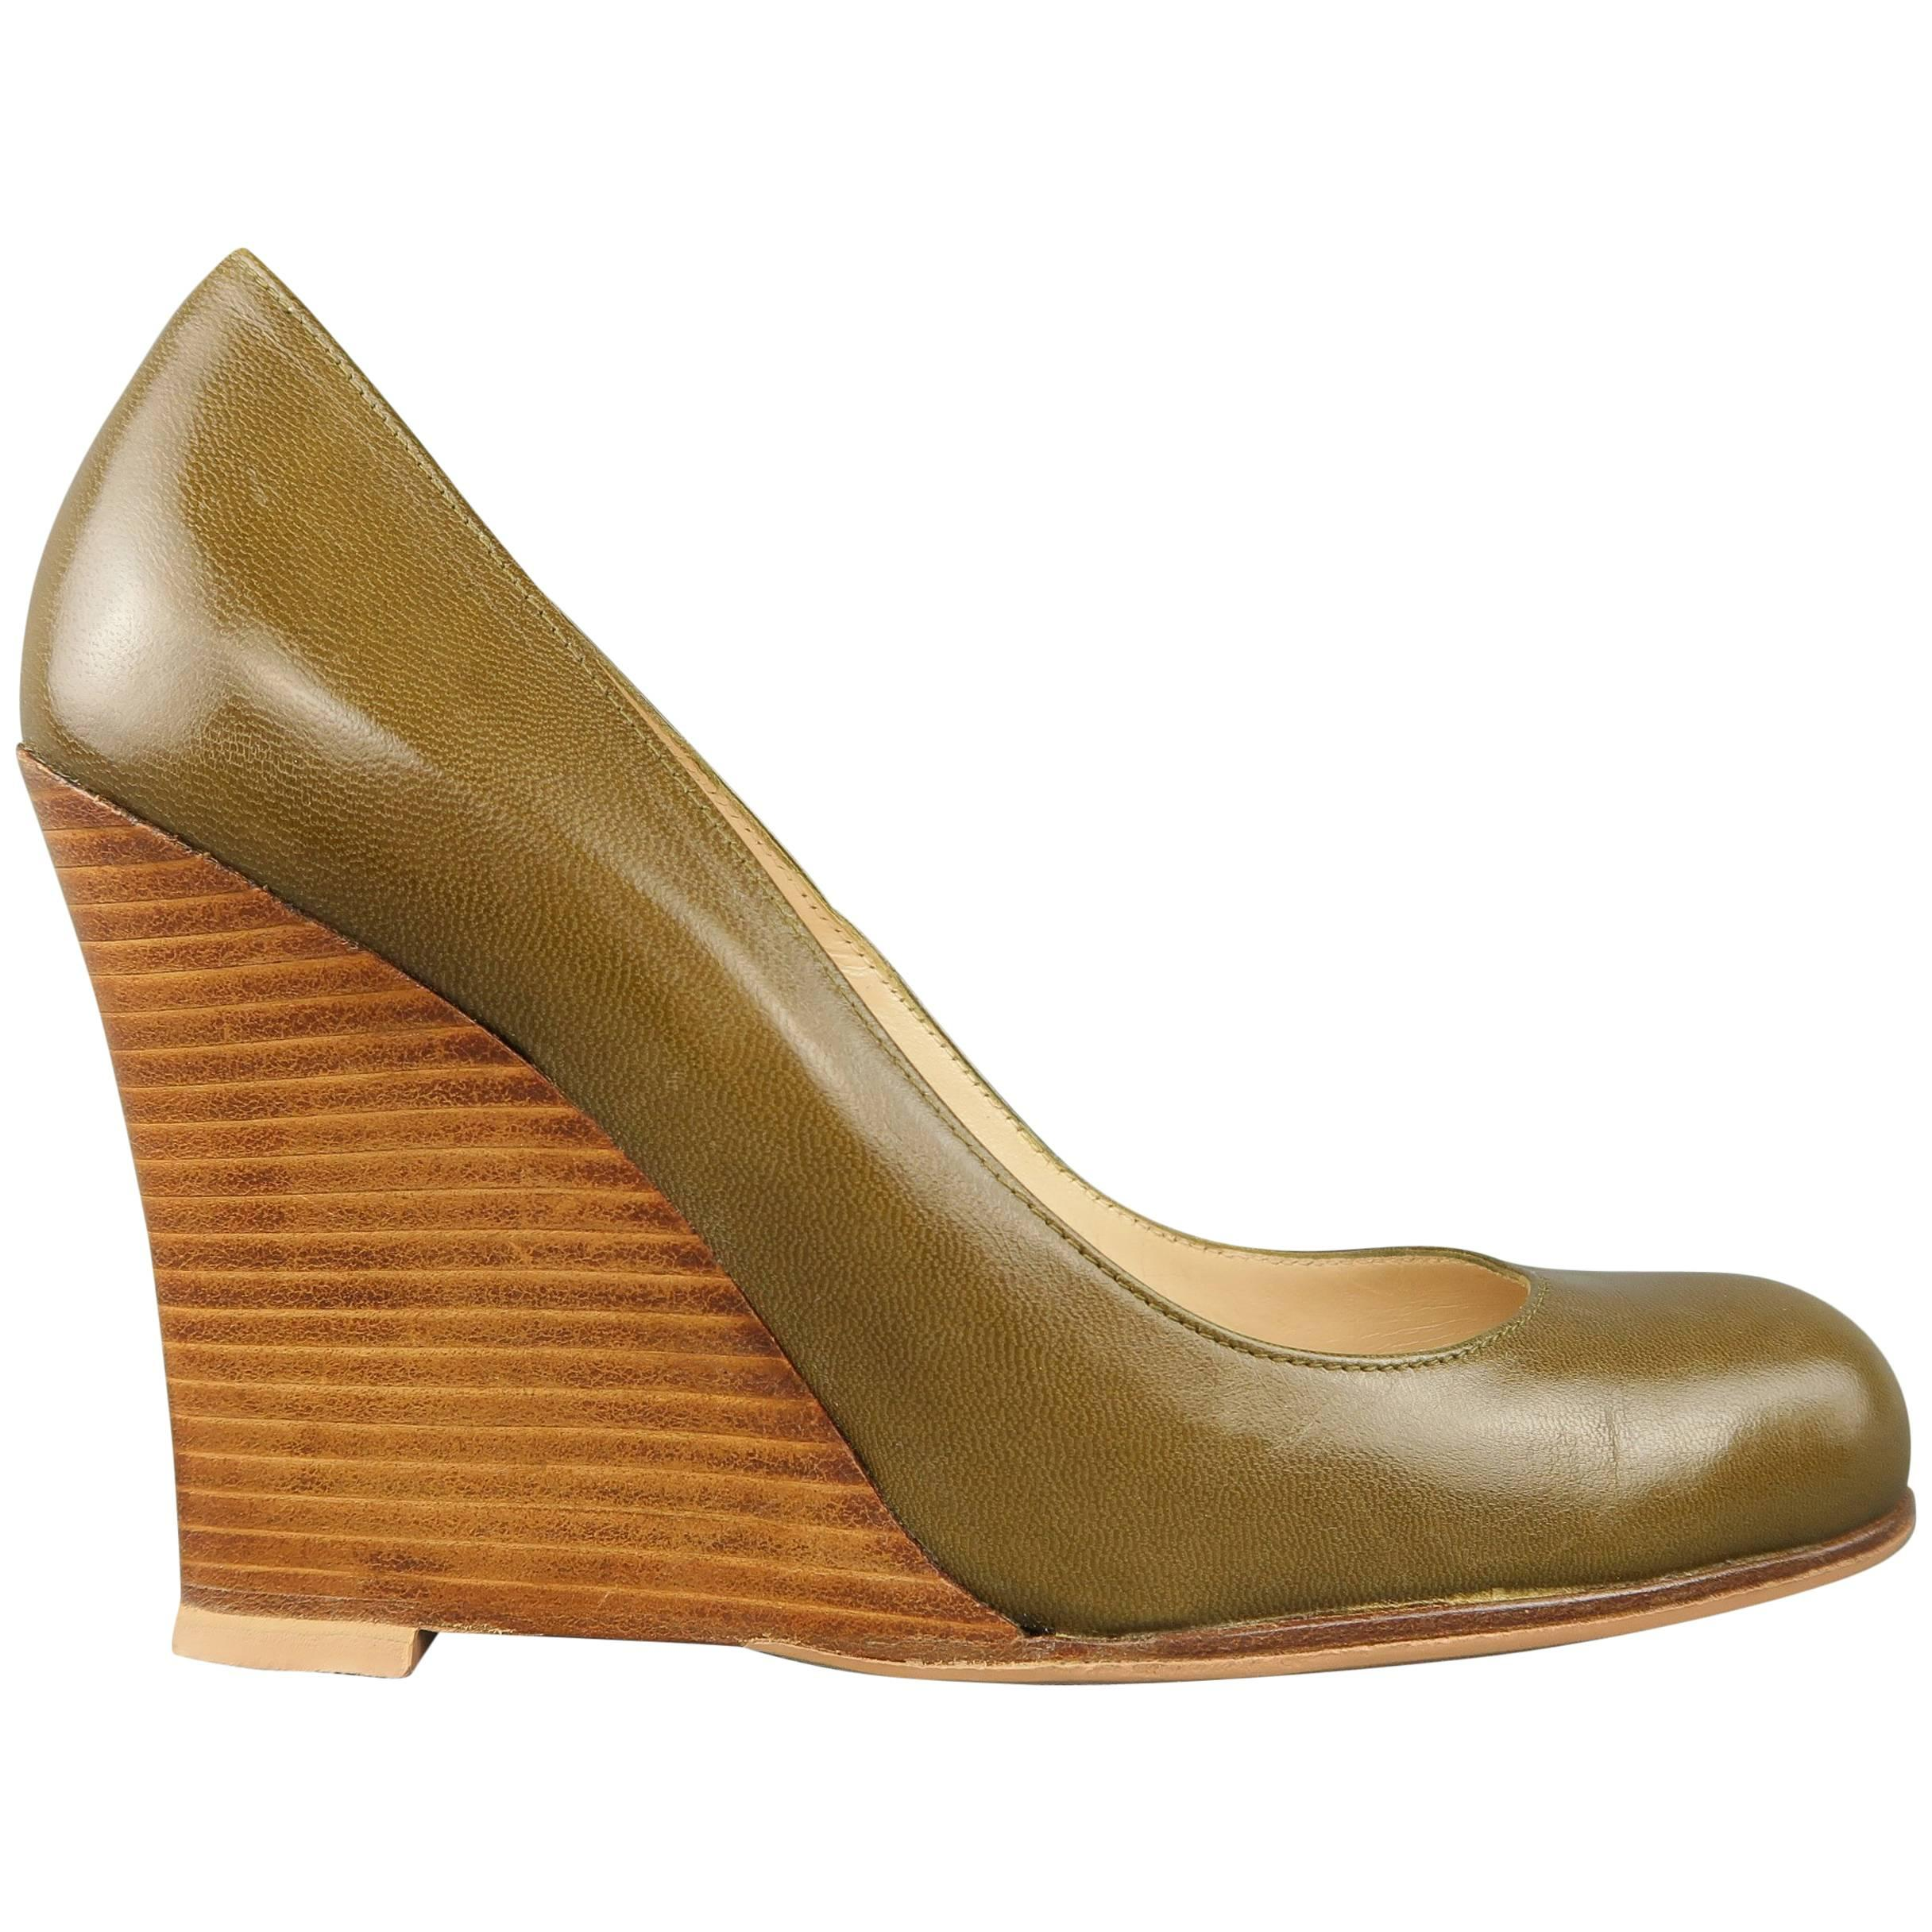 Christian Louboutin Olive Green Leather Stacked Wedge Pumps